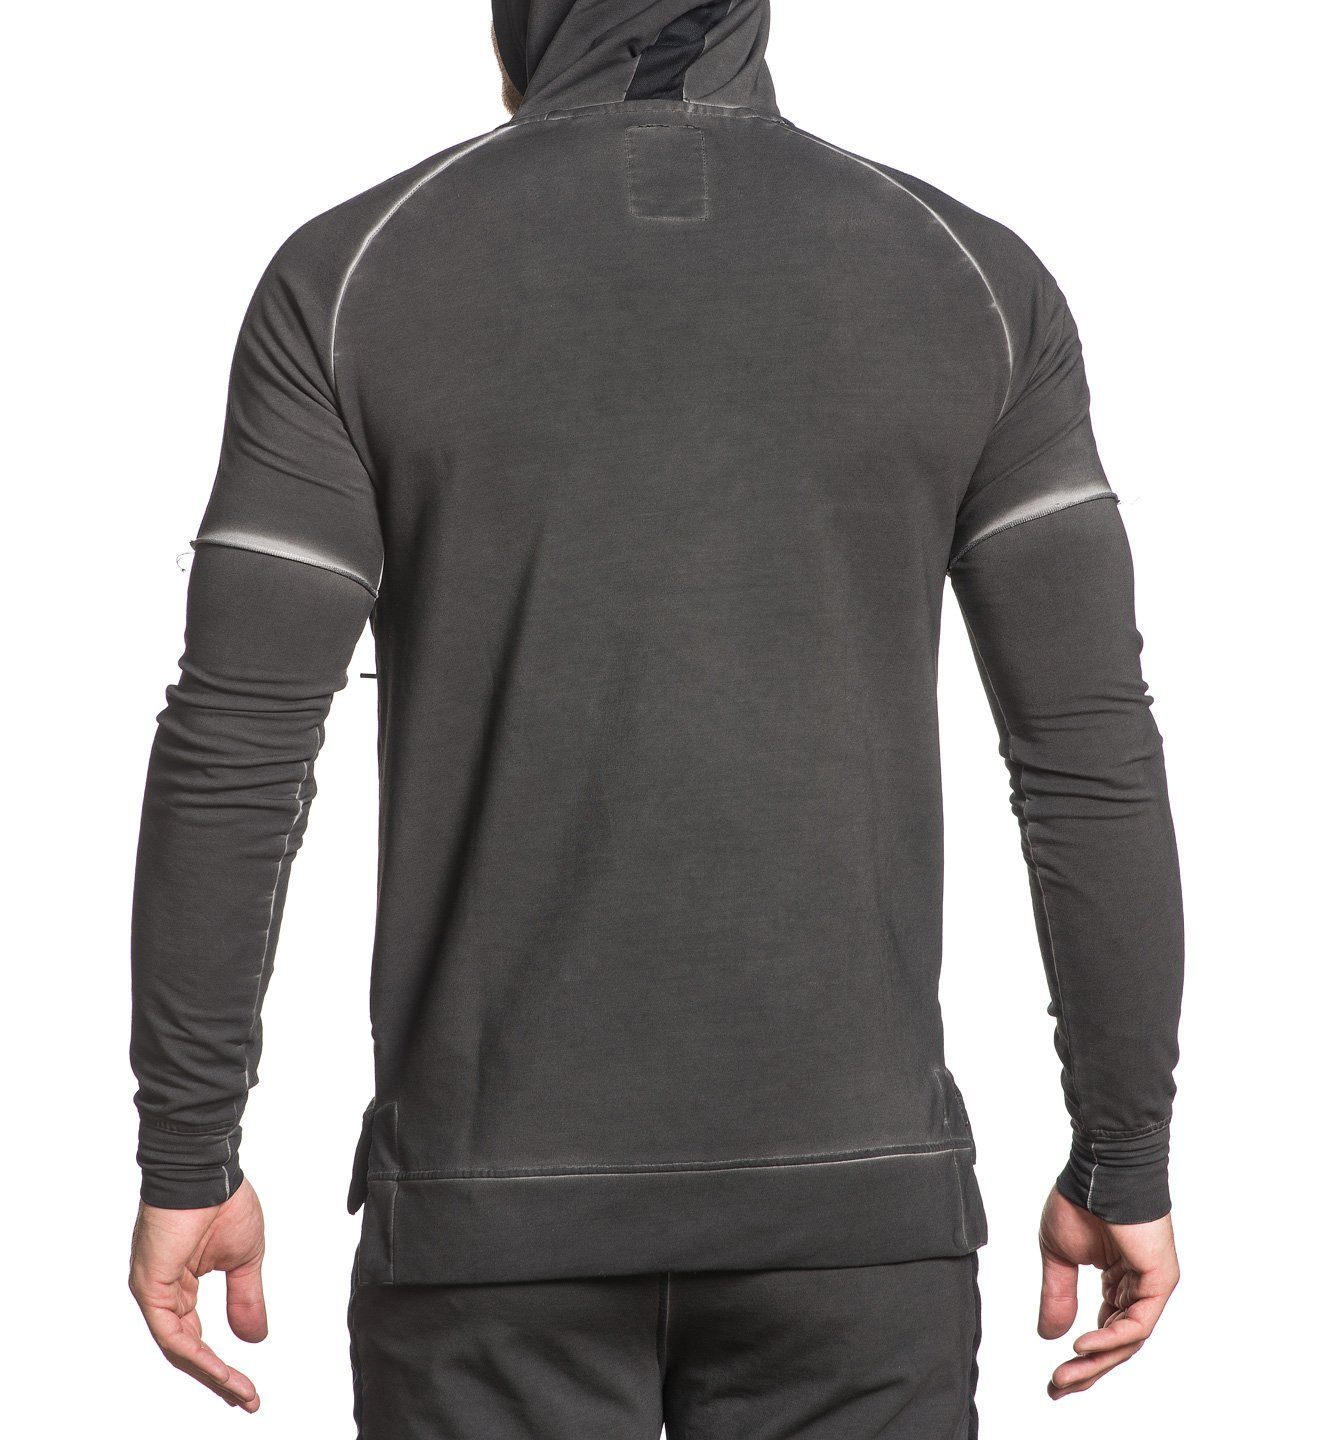 Blackout Pullover - Mens Hooded Sweatshirts - American Fighter